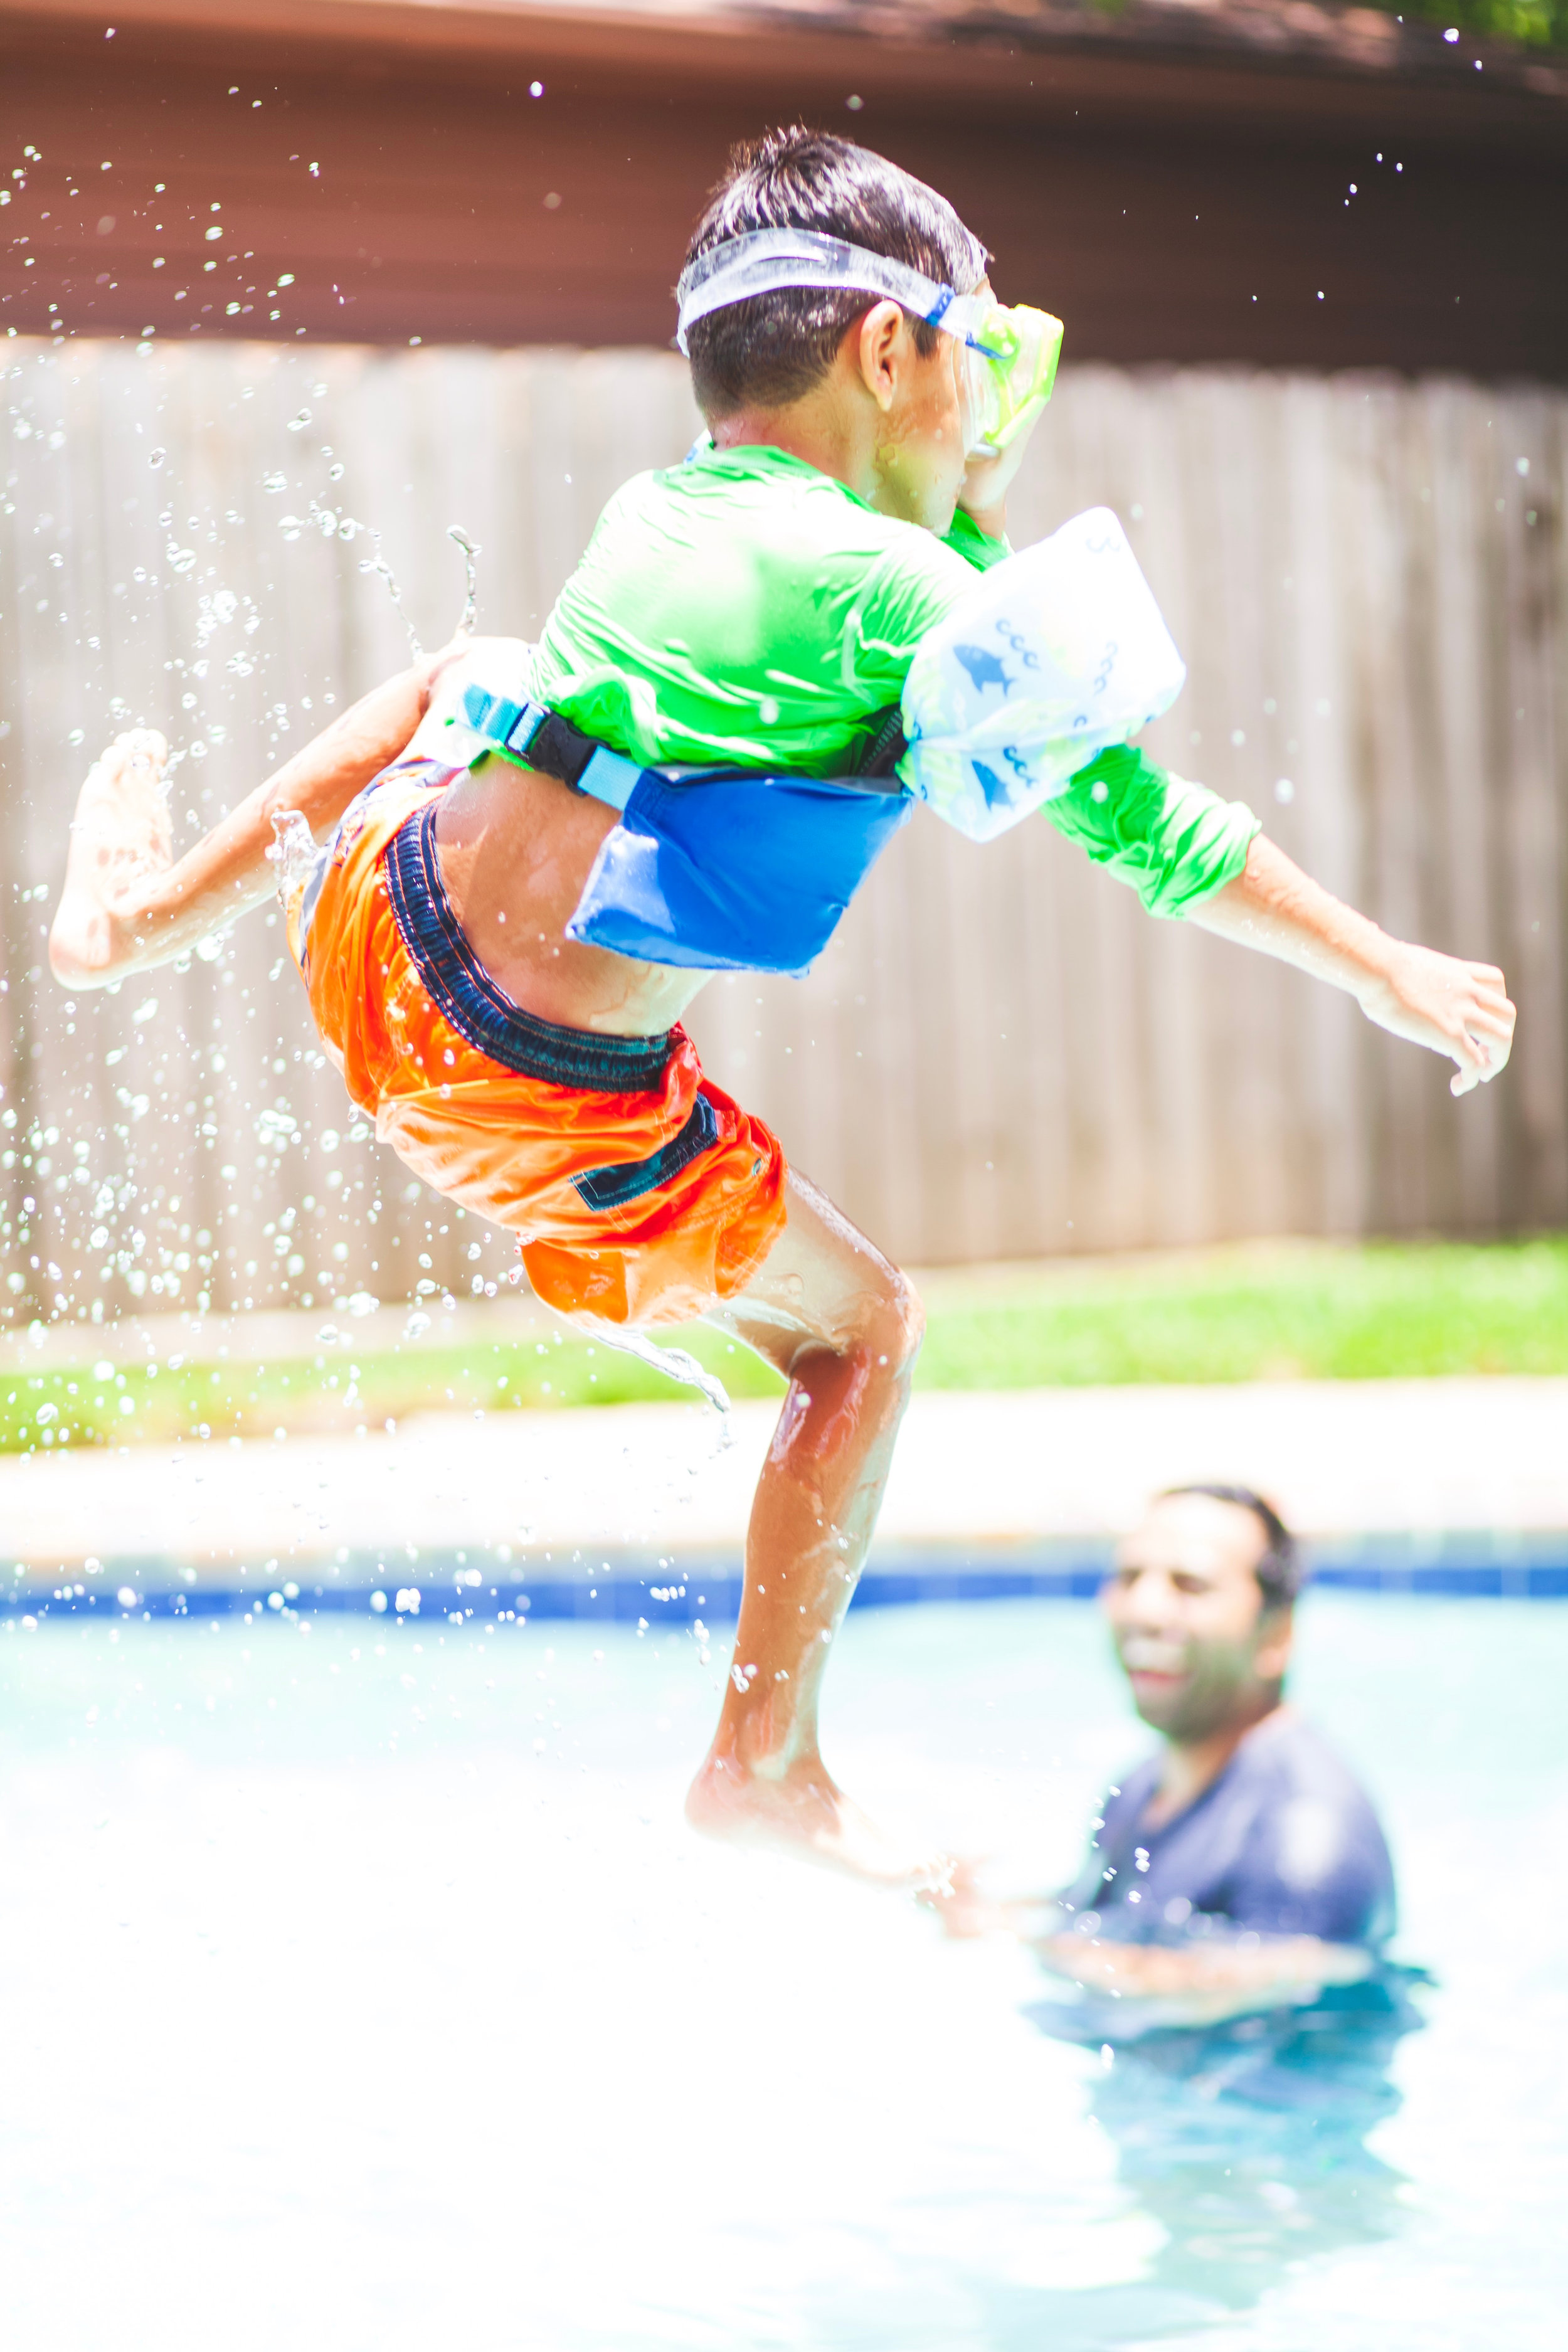 Canva - Boy in Green Crew-neck Shirt and Orange Shorts Jump over Swimming Pool.jpg